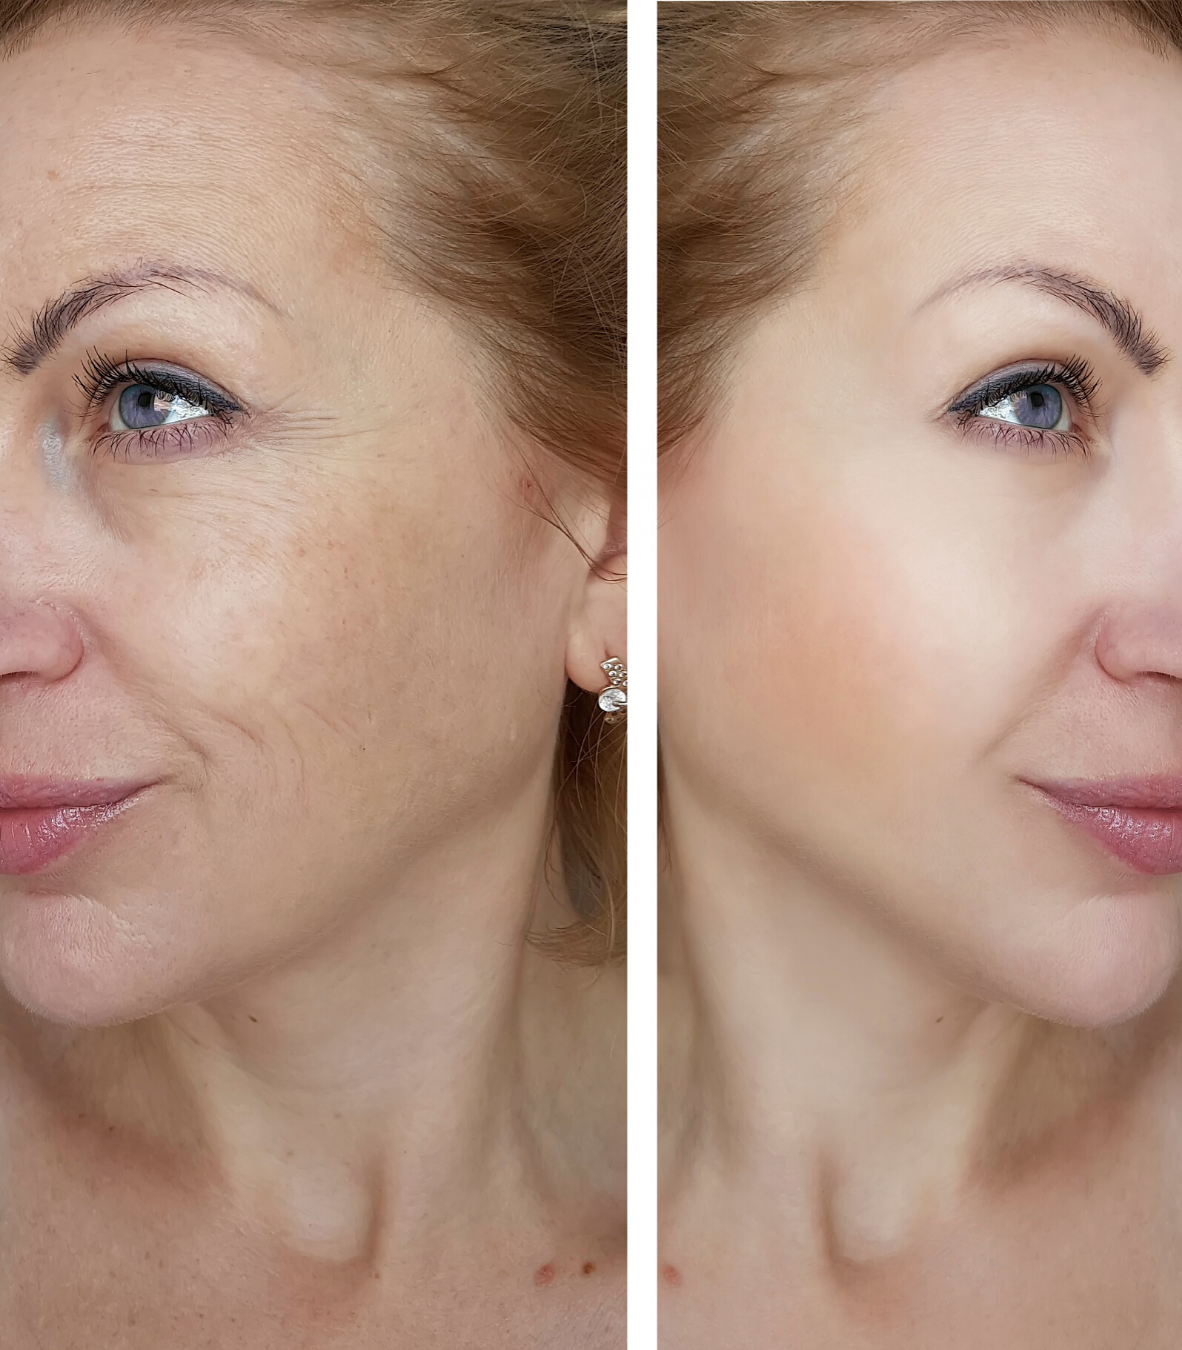 before and after comparison of a woman's face with wrinkled and tight skin.